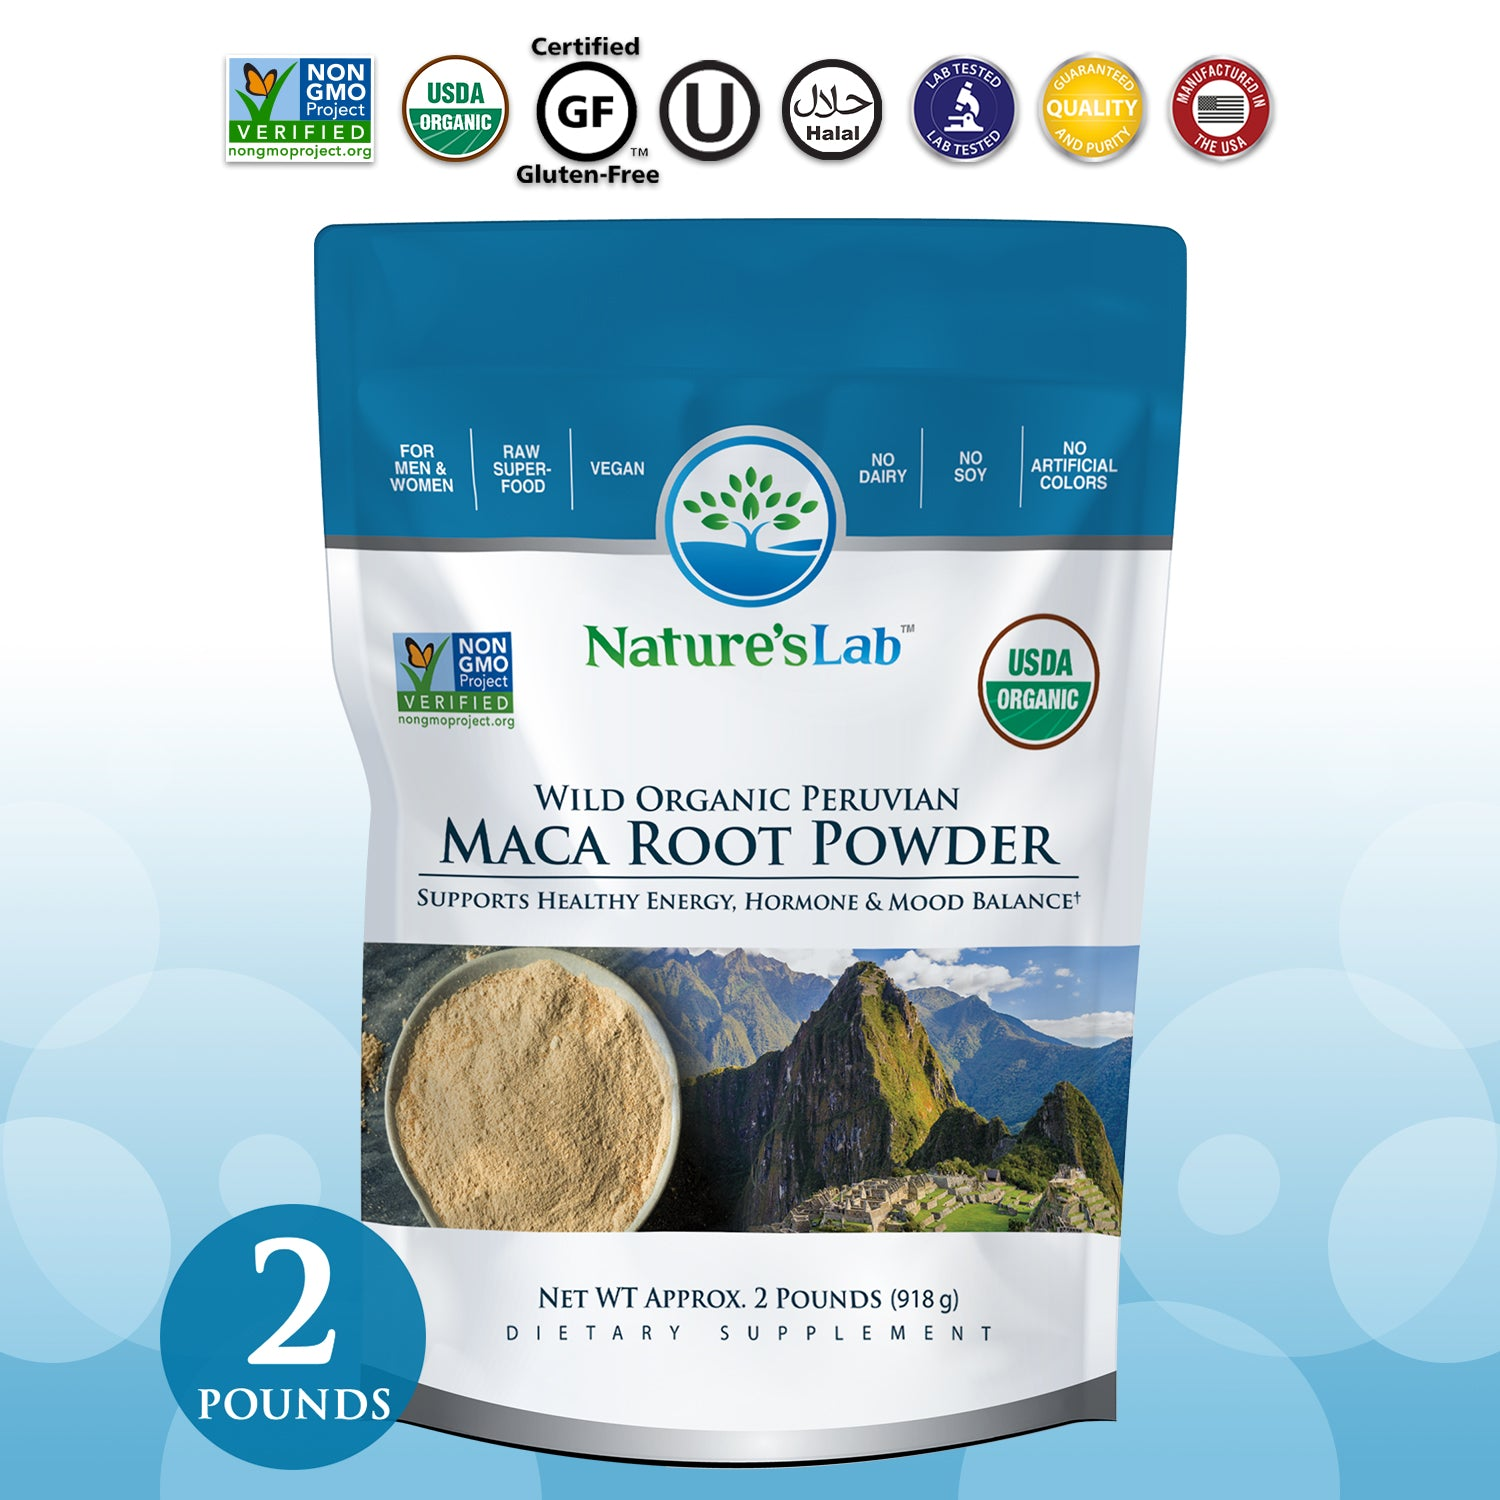 Organic Maca Root Powder 2 lb bag